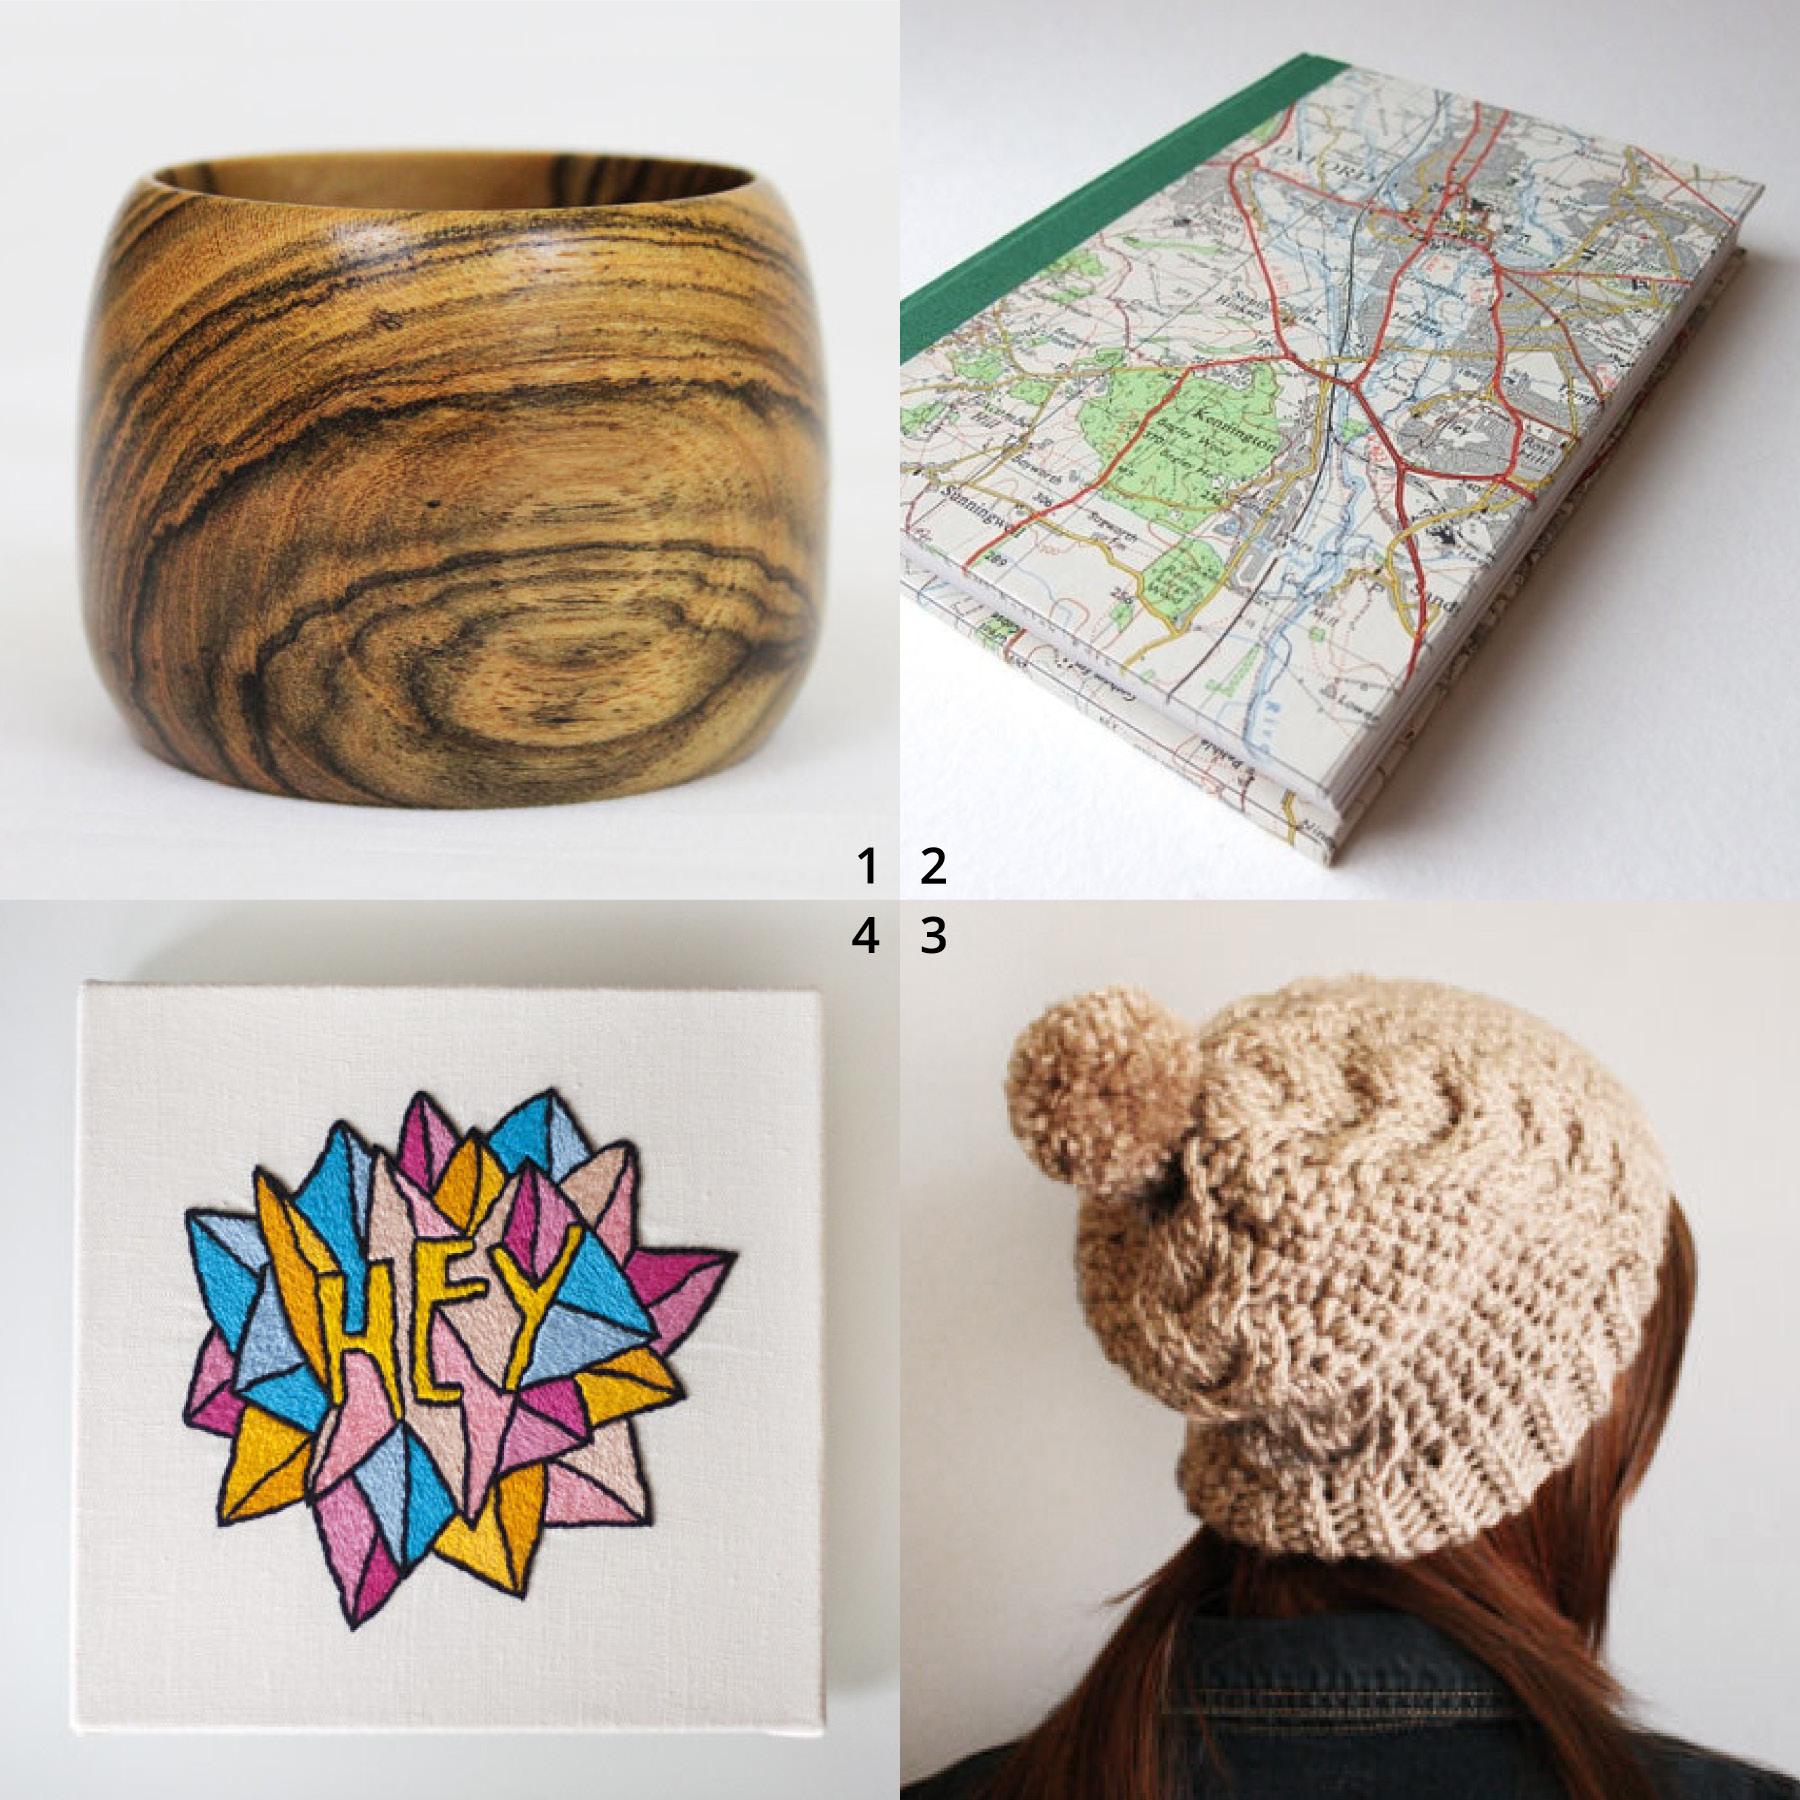 Clockwise from top left:      1  Small Bocote Ring Bowl by WatkinsWoodWork  2  Sketchbook with Original 1967 Map of Oxford Cover by HandMadeBooks  3  Hand Knit Taupe Slouchy Warm Winter Hat by YarnPlusYarn  4  Hey Embroidery by LouLaFayette